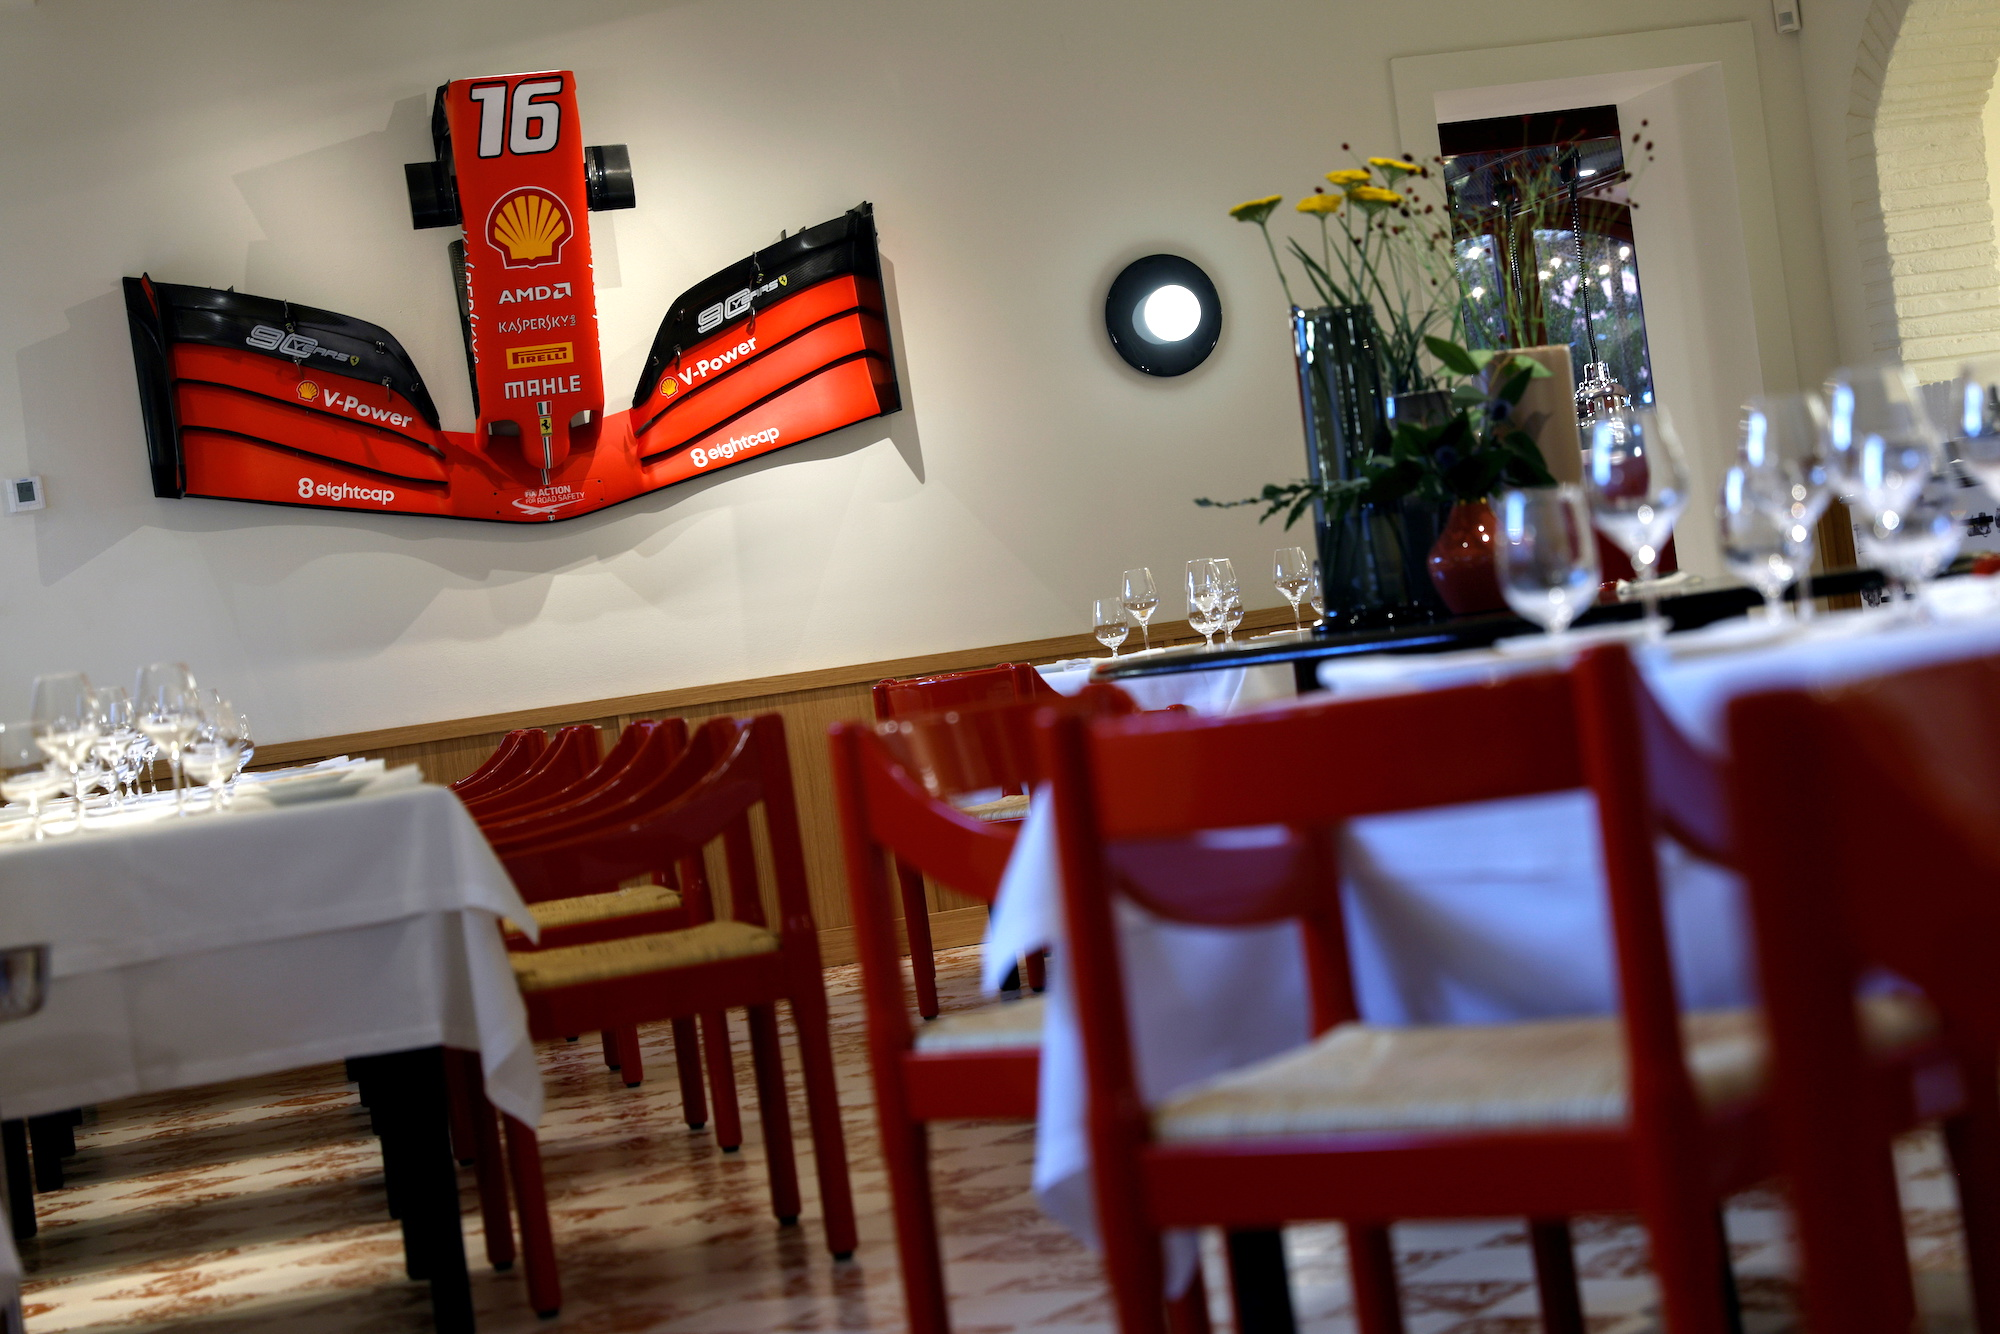 Michelin-starred cuisine next to Ferrari engines? Yes please